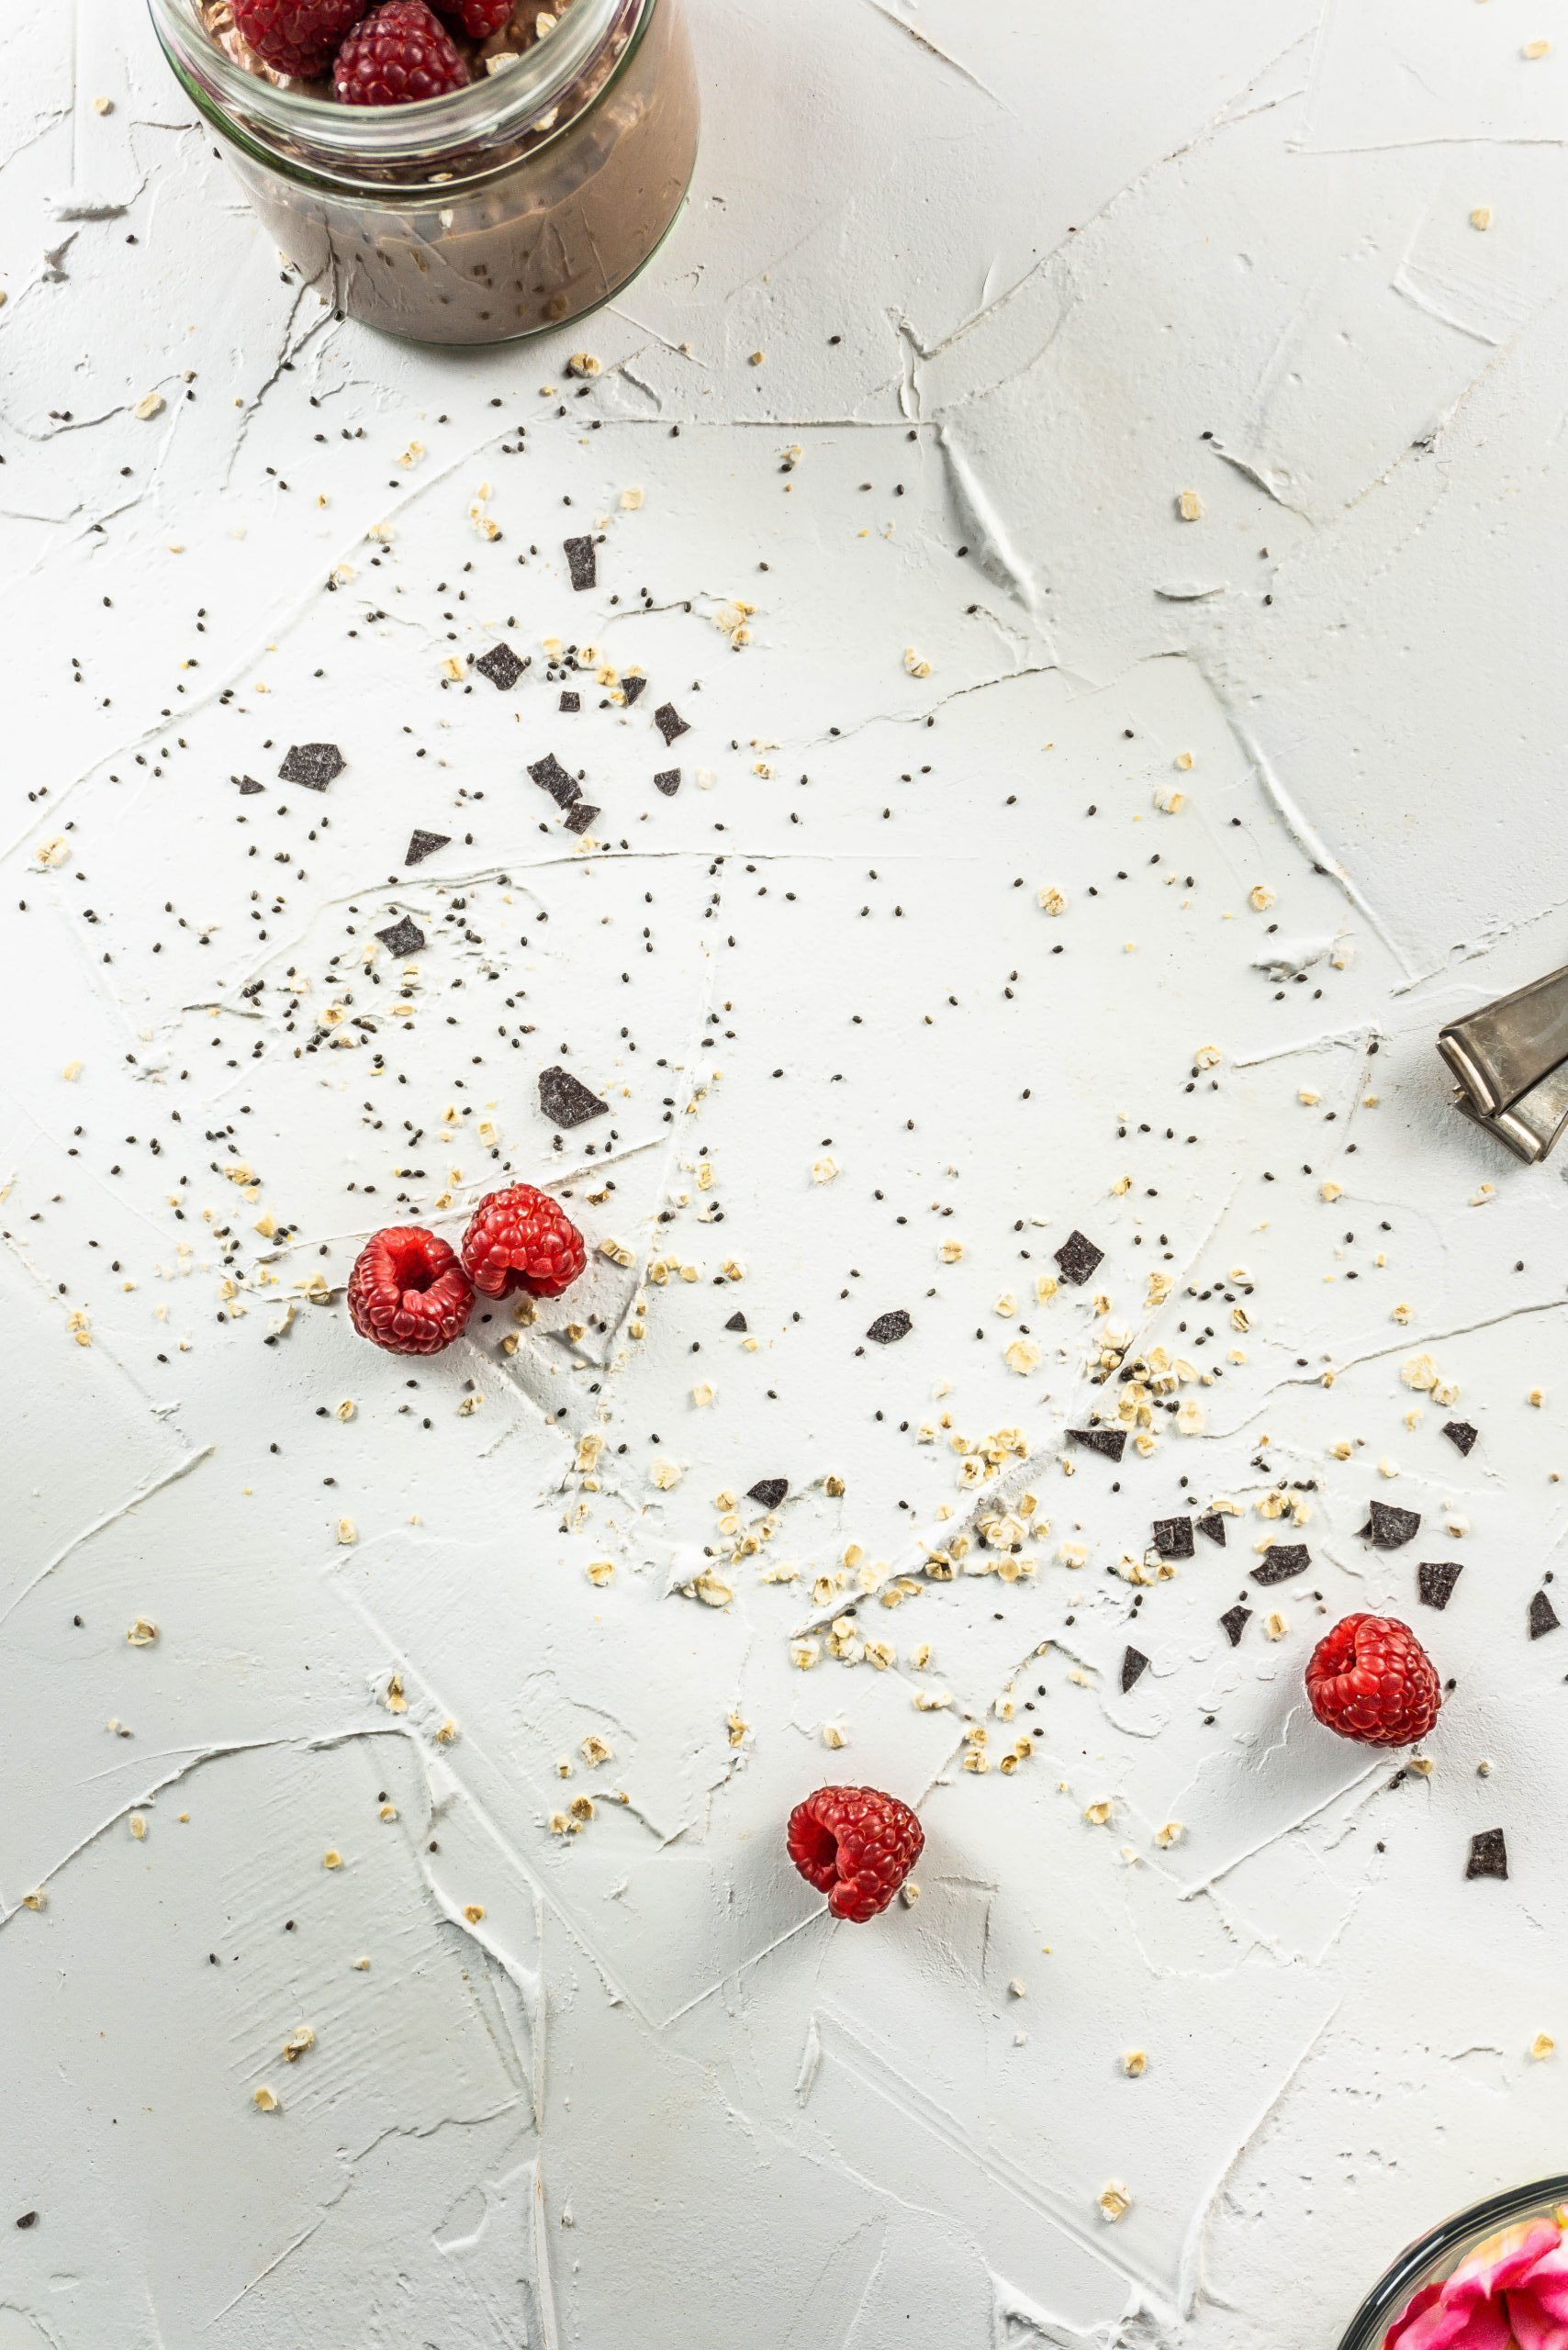 Strewn oats, chia, chocolate, and raspberries on a white background